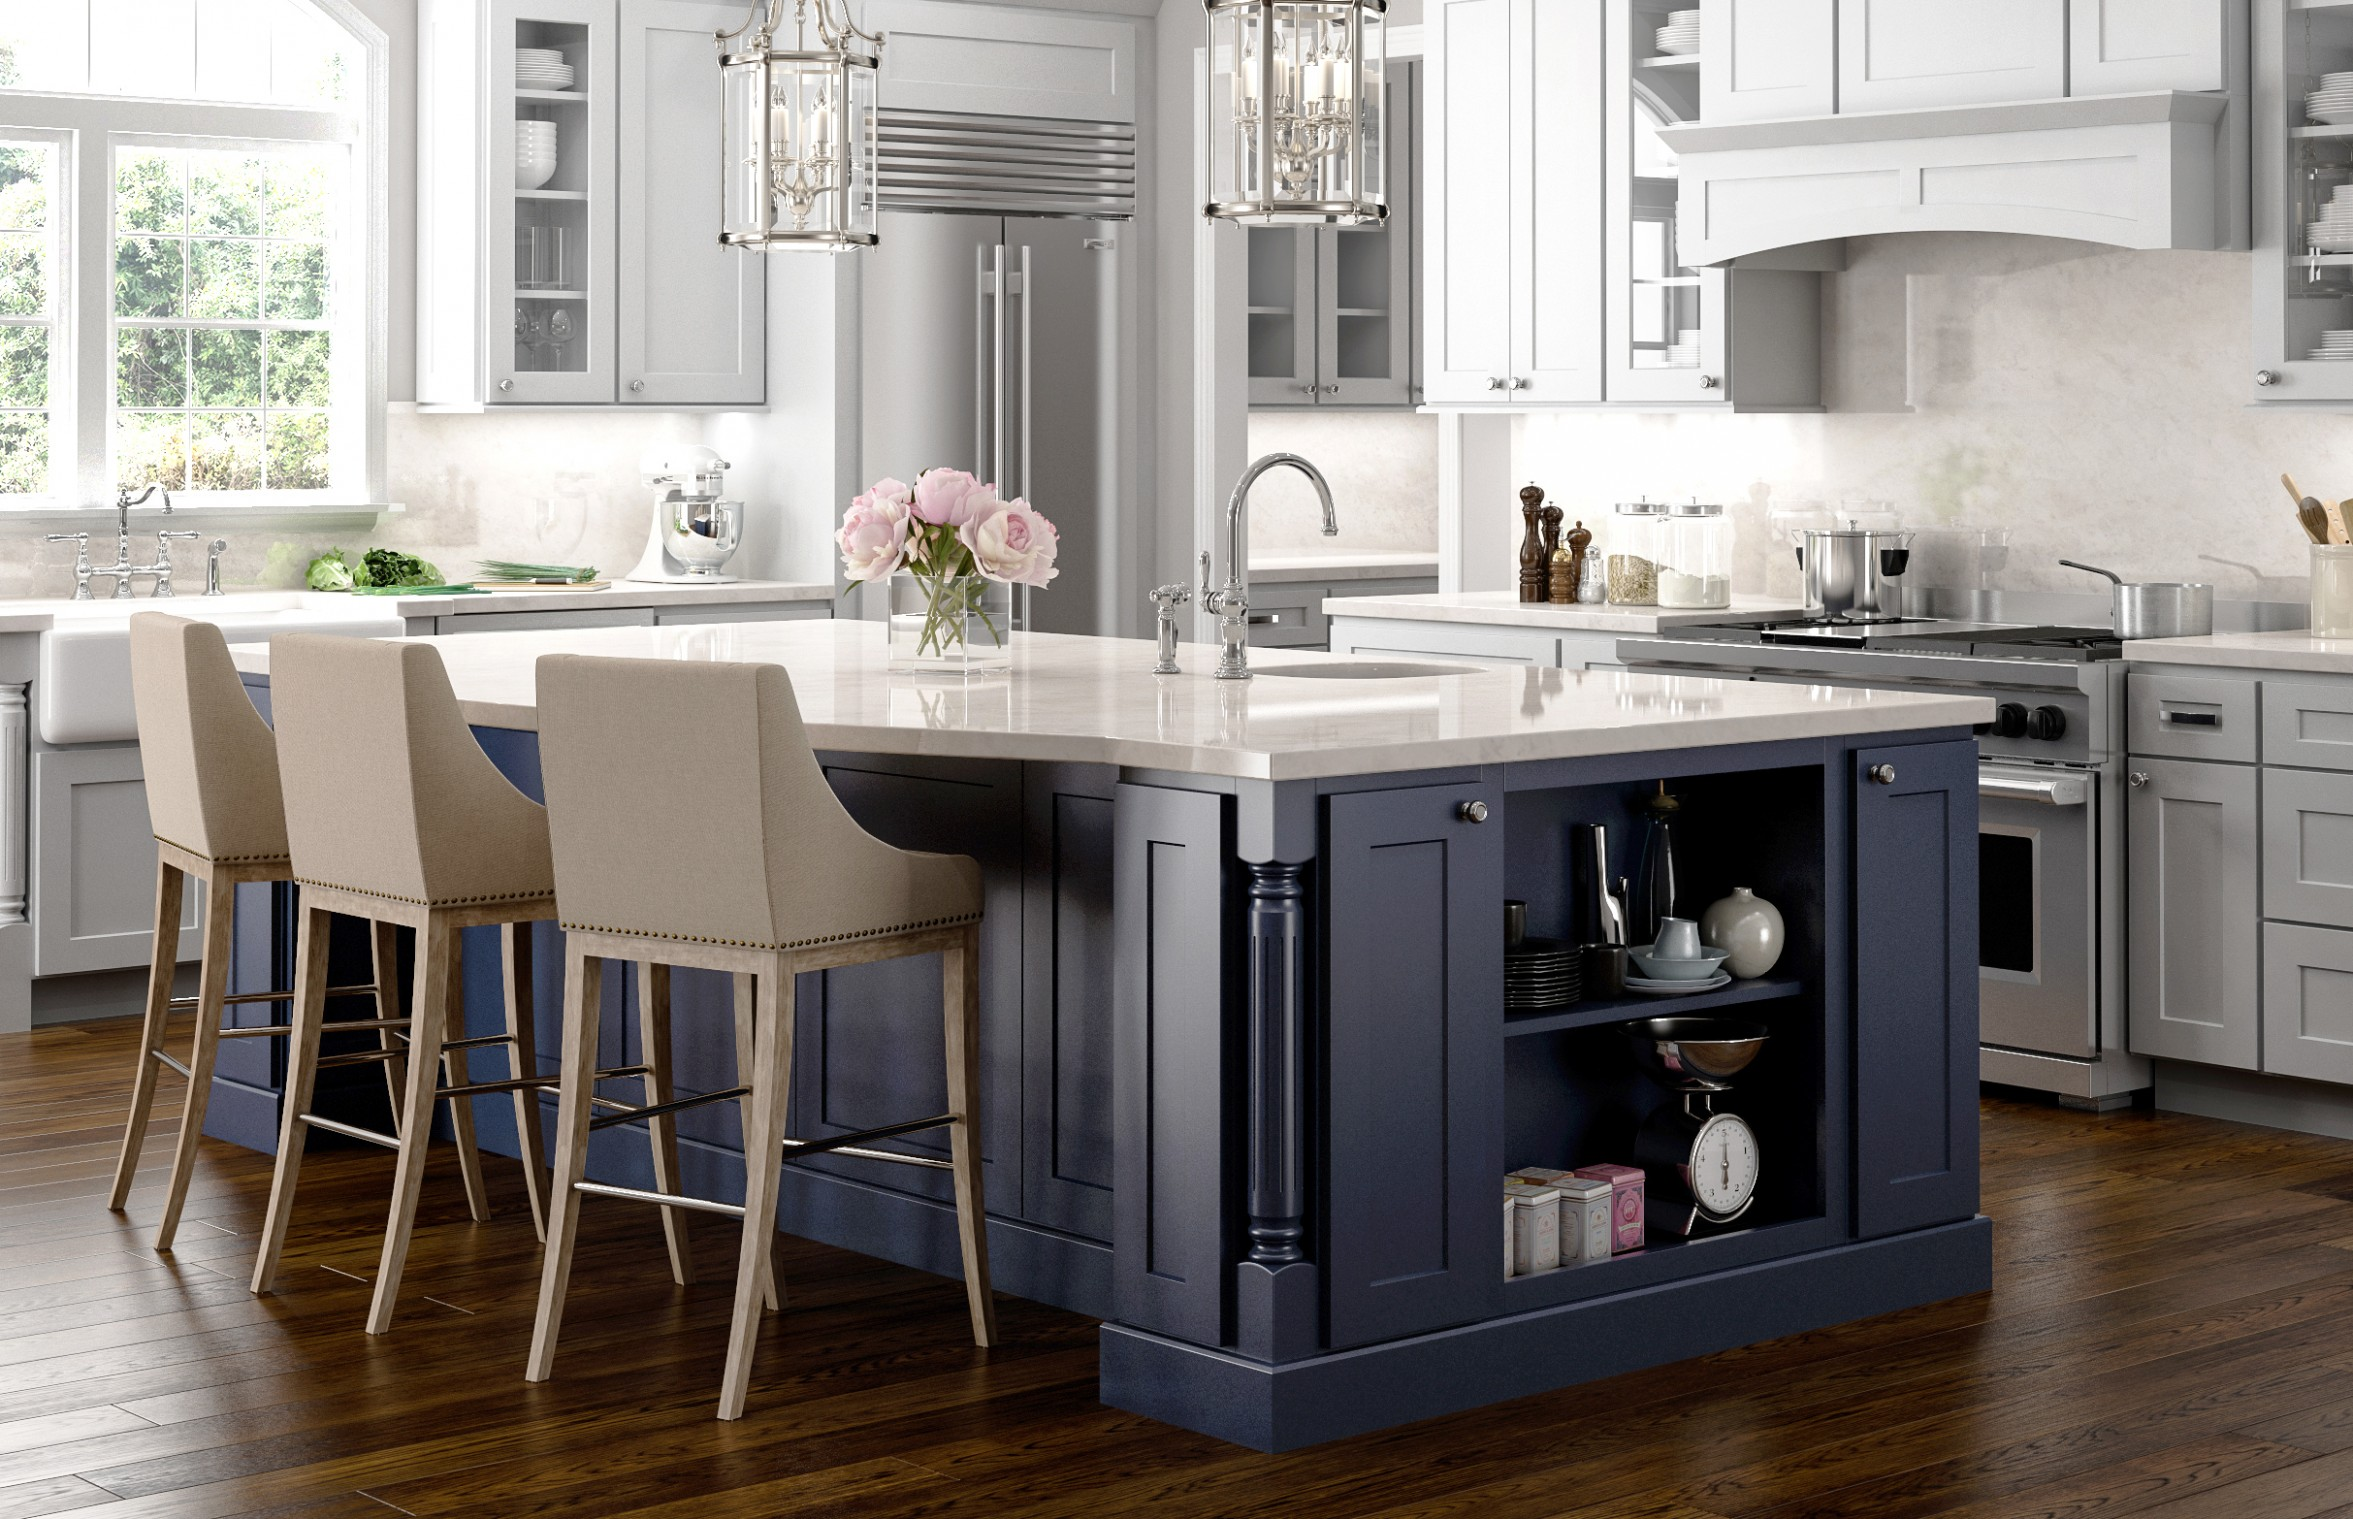 Superior Cabinet Supply - Kitchen Cabinets Frankfort, New Lenox  - Kitchen Cabinets Mokena Il